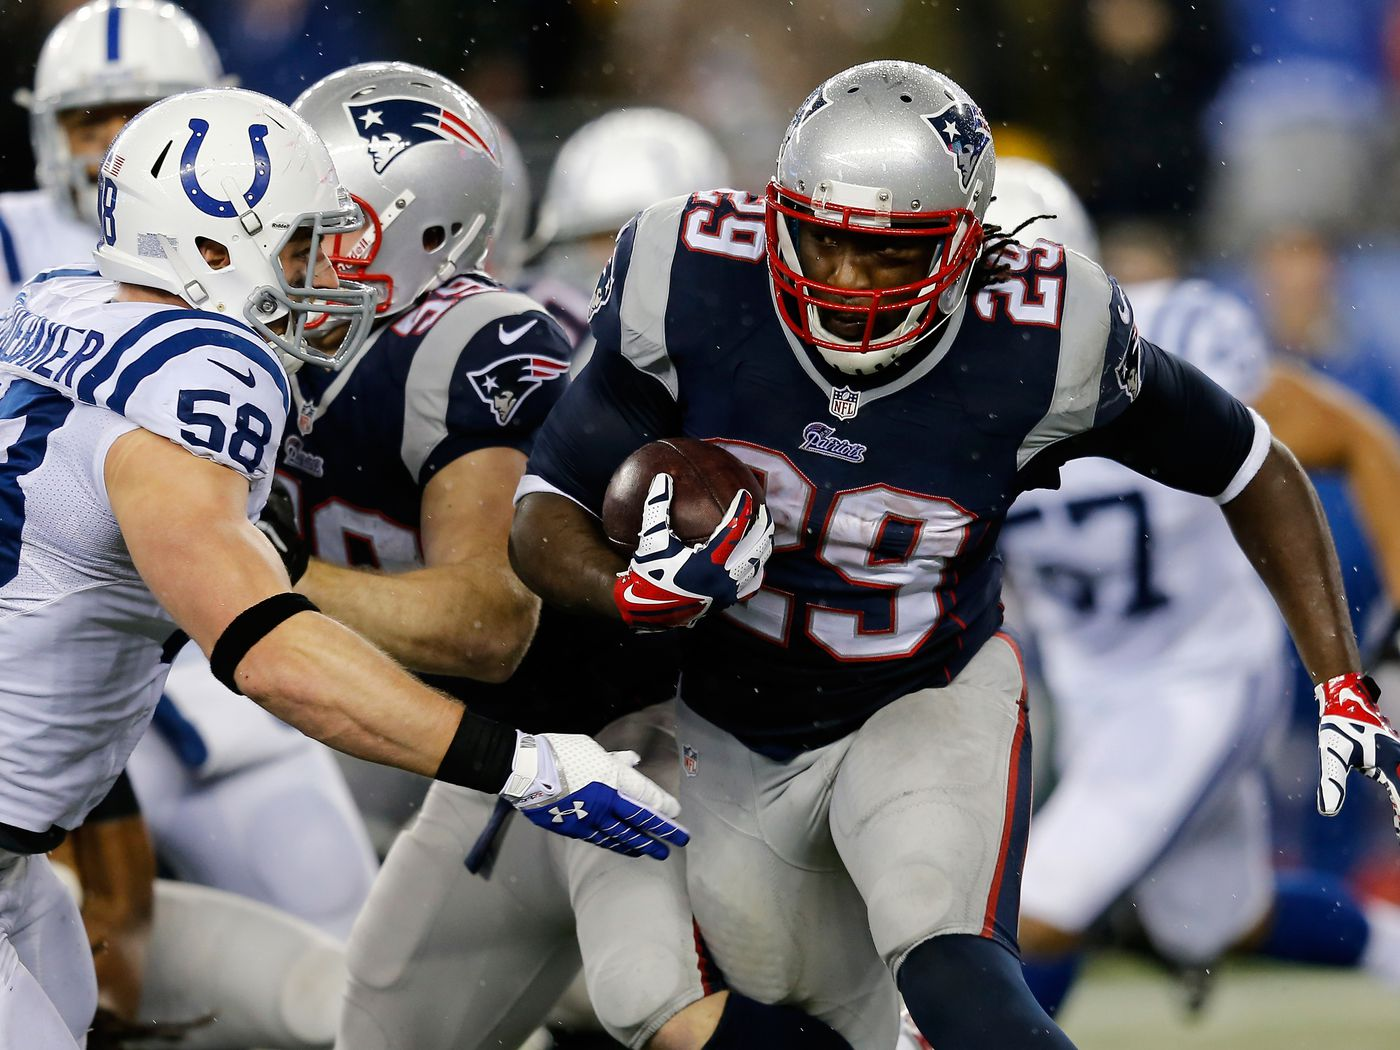 Colts vs. Patriots final score: LeGarrette Blount stomps past Indianapolis, New  England wins 43-22 - Behind the Steel Curtain